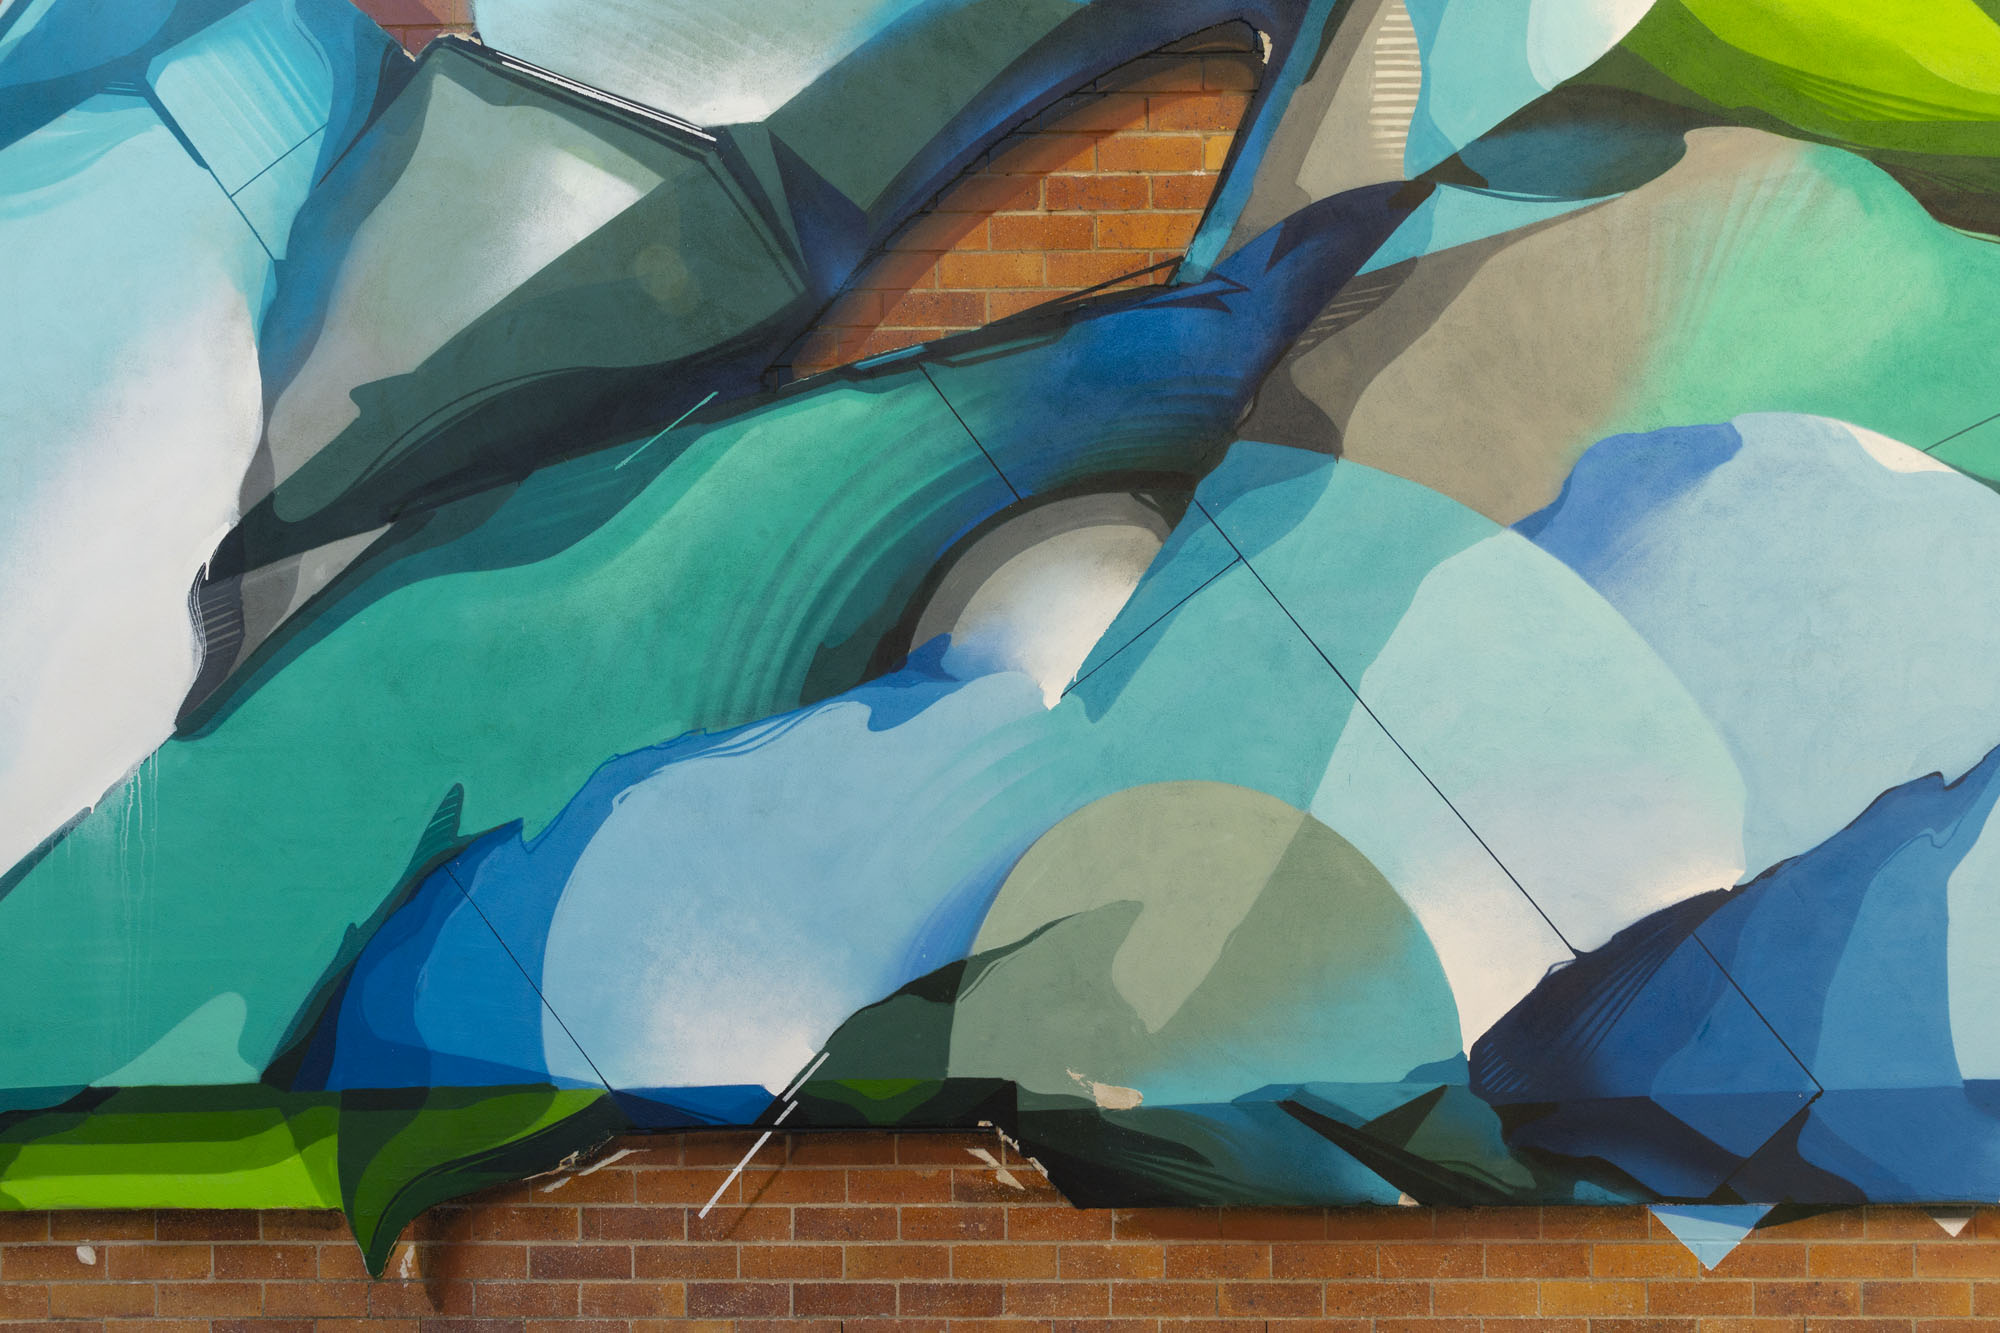 A work by Does - 201905-DOES-QUT-Brisbane_LukeShirlaw_IMG_0960